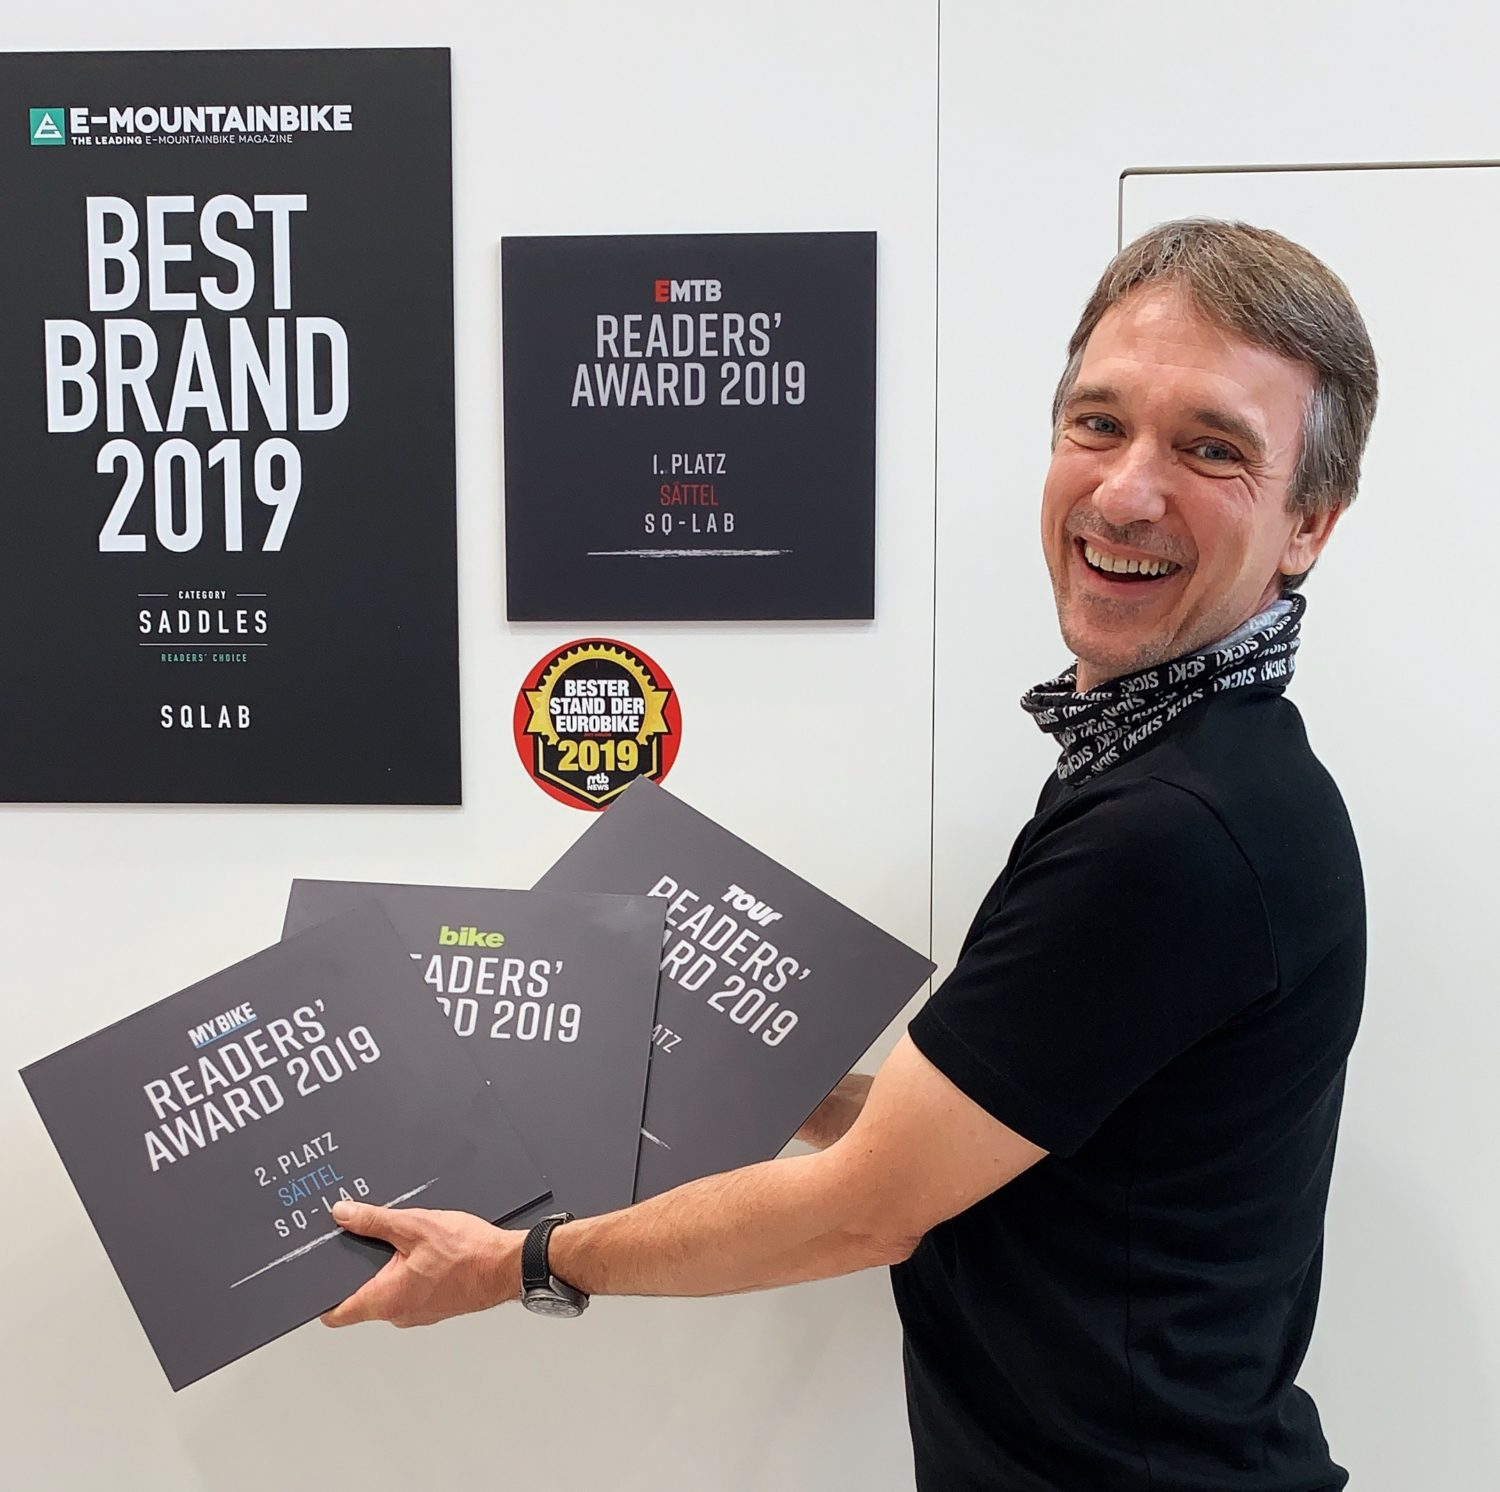 SQlab Best Saddle Brand of the Year 2019